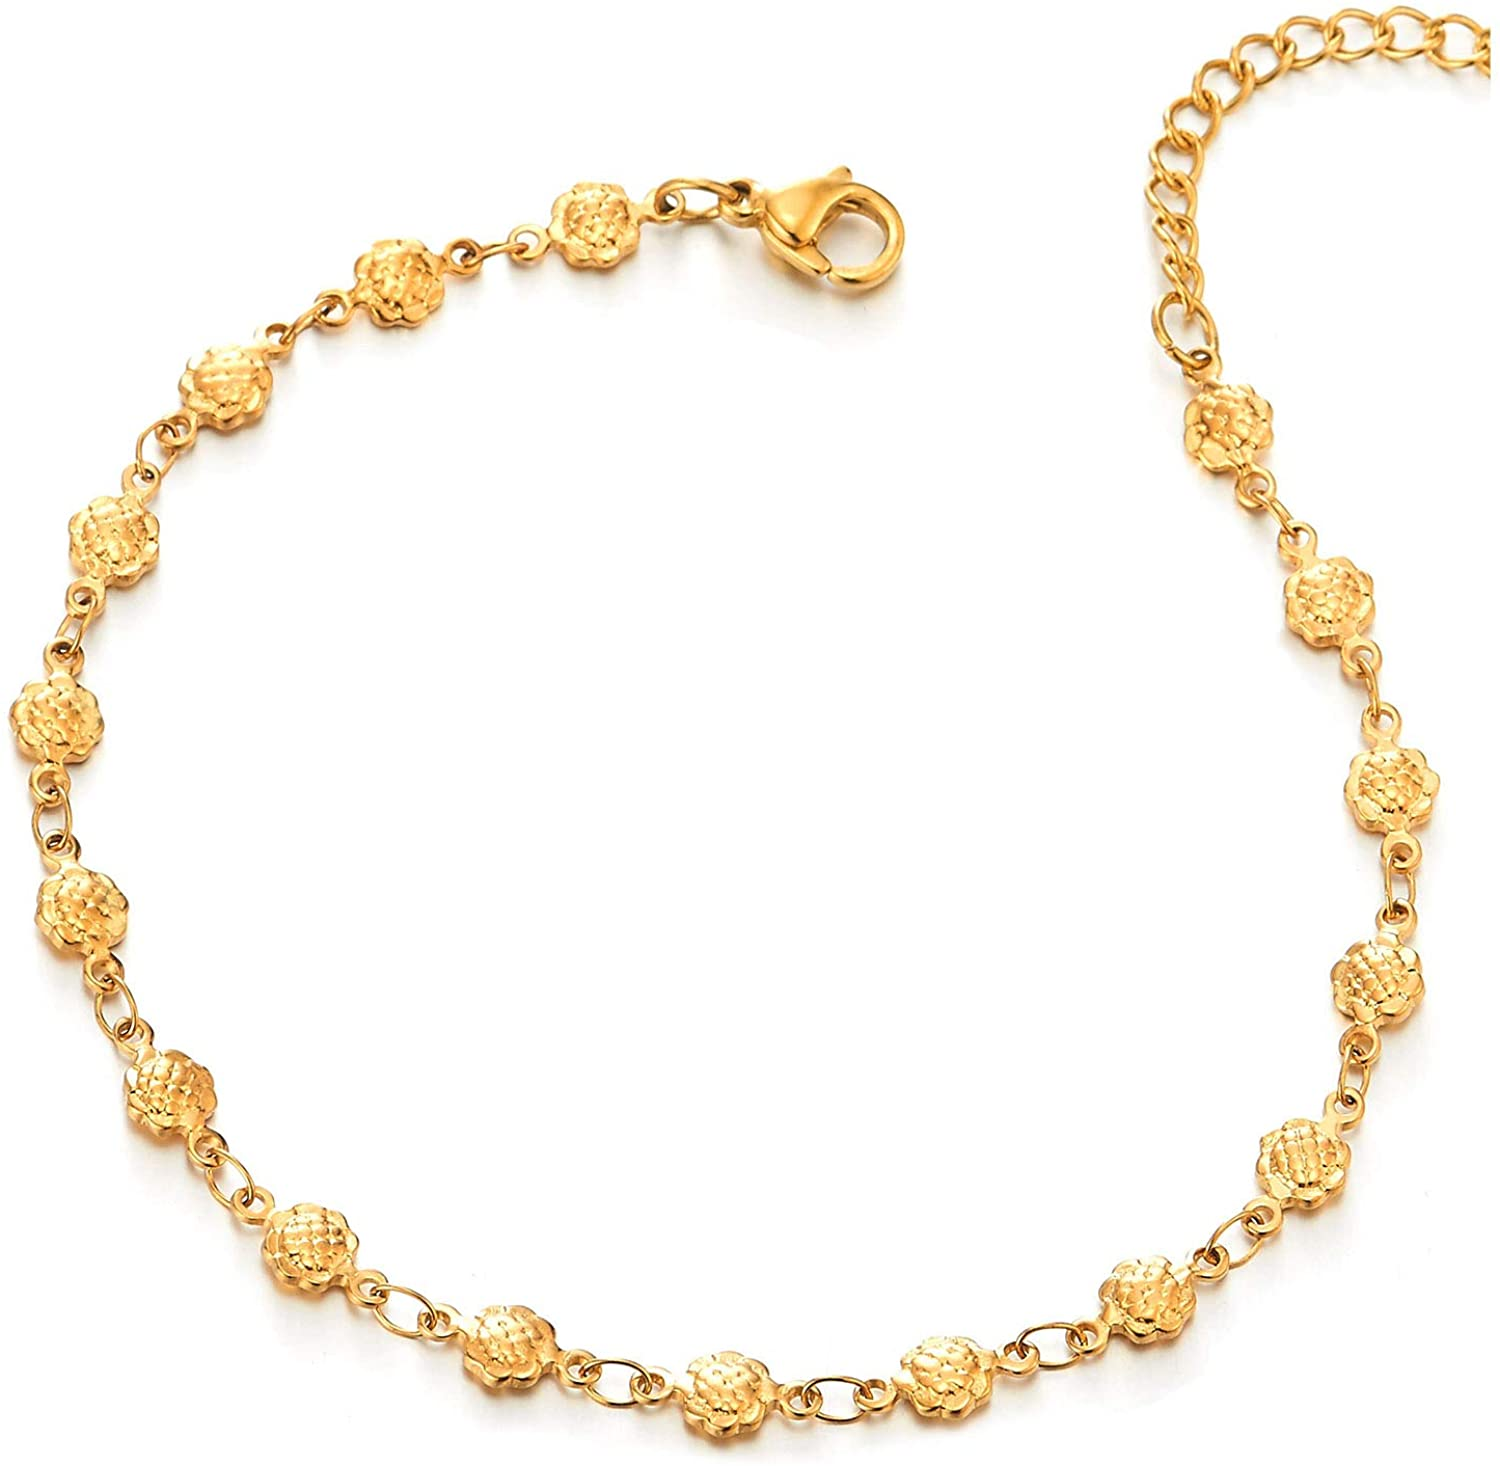 COOLSTEELANDBEYOND Beautiful Steel Womens Gold Color Sunflower Link Chain Anklet Bracelet with Dangling Heart